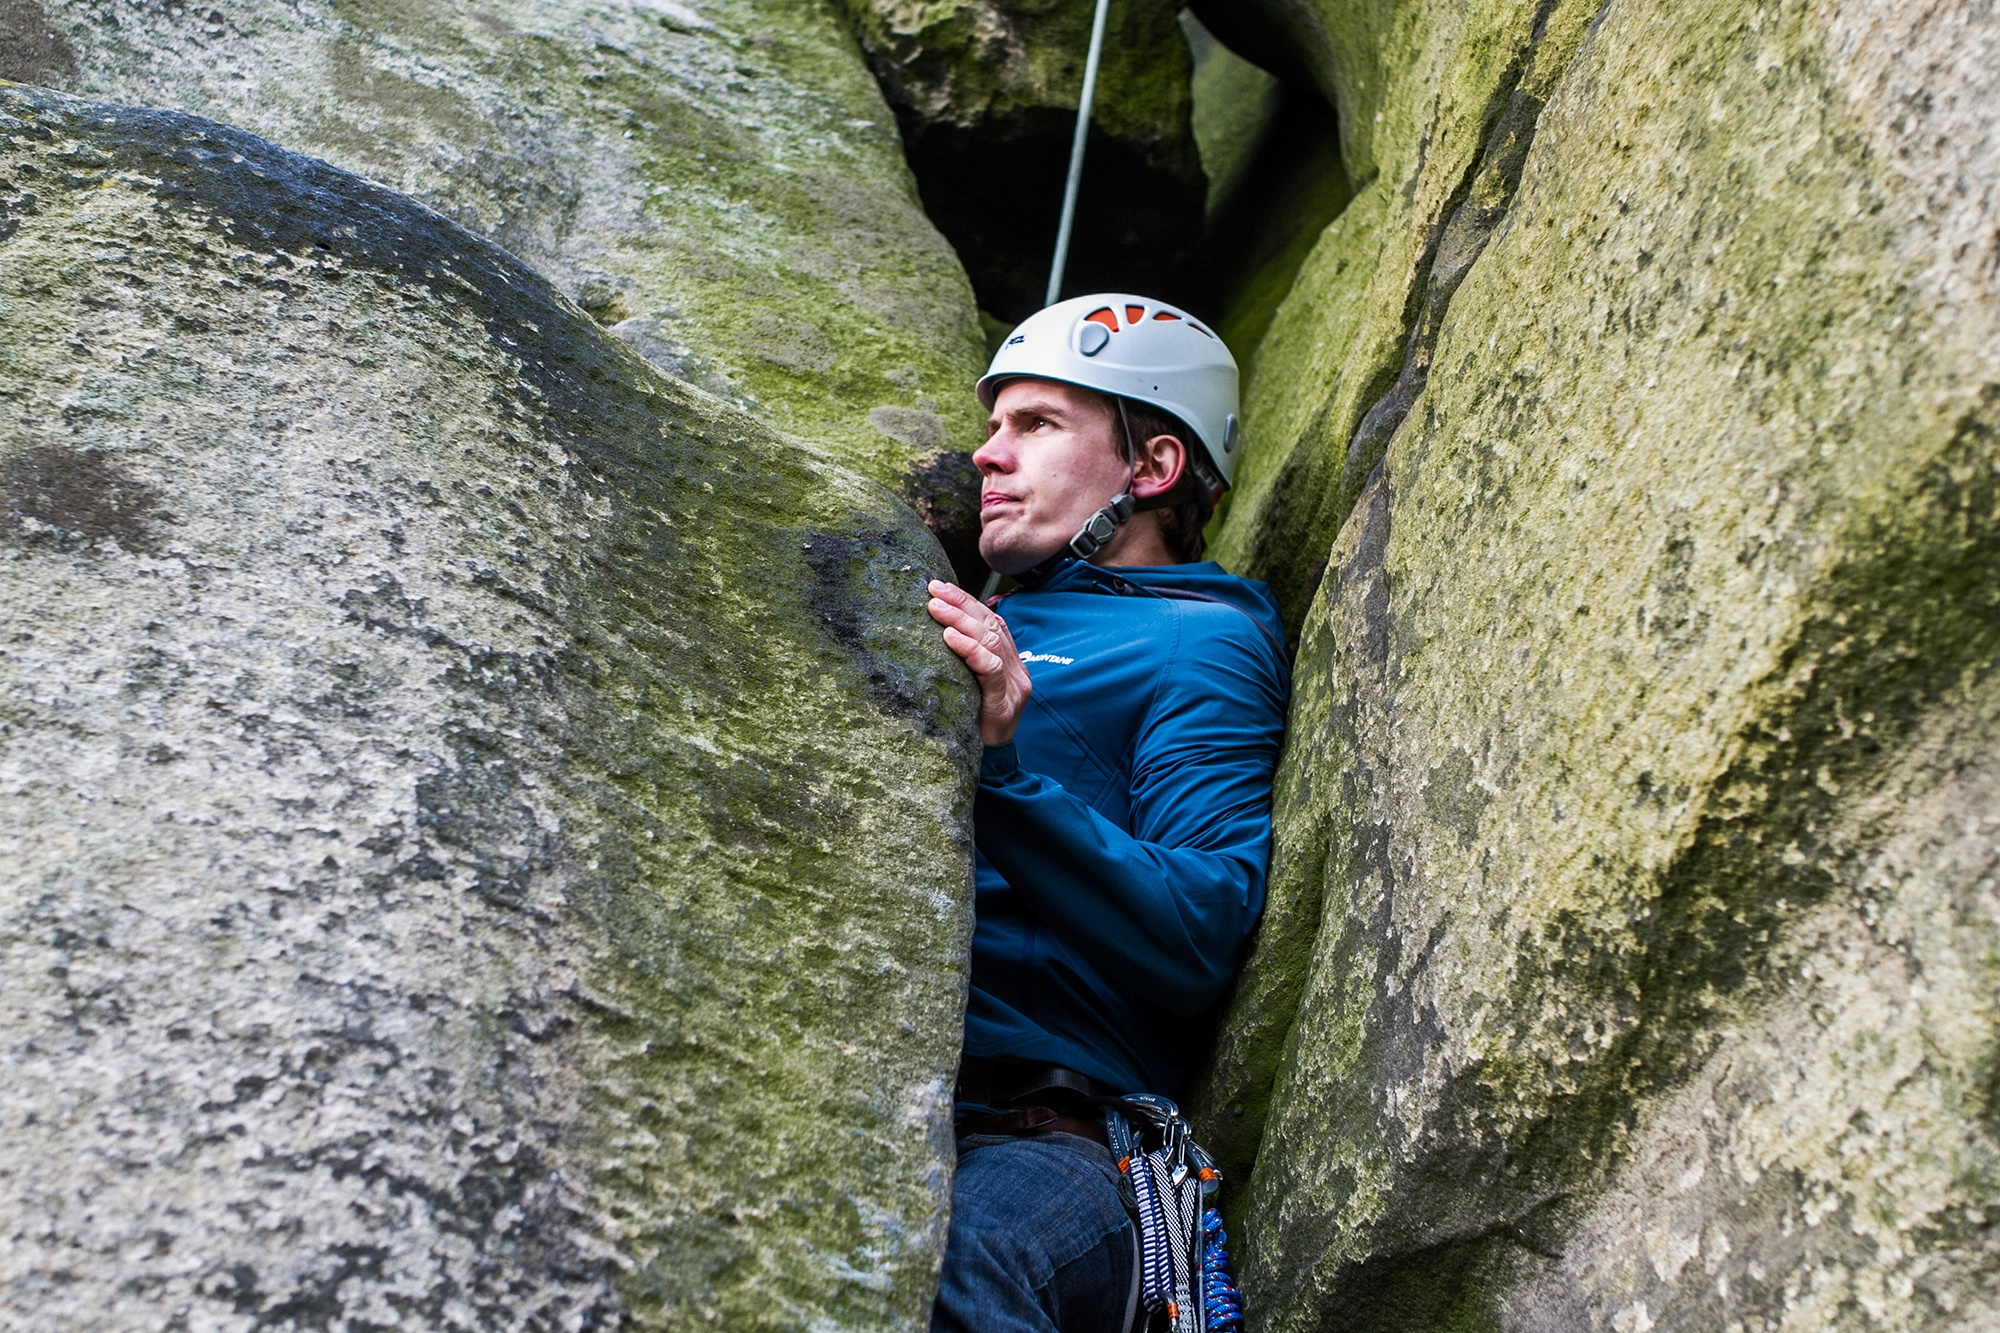 Rich Pooley on Black Wall, Almscliffe. Photographed by Jessie Leong